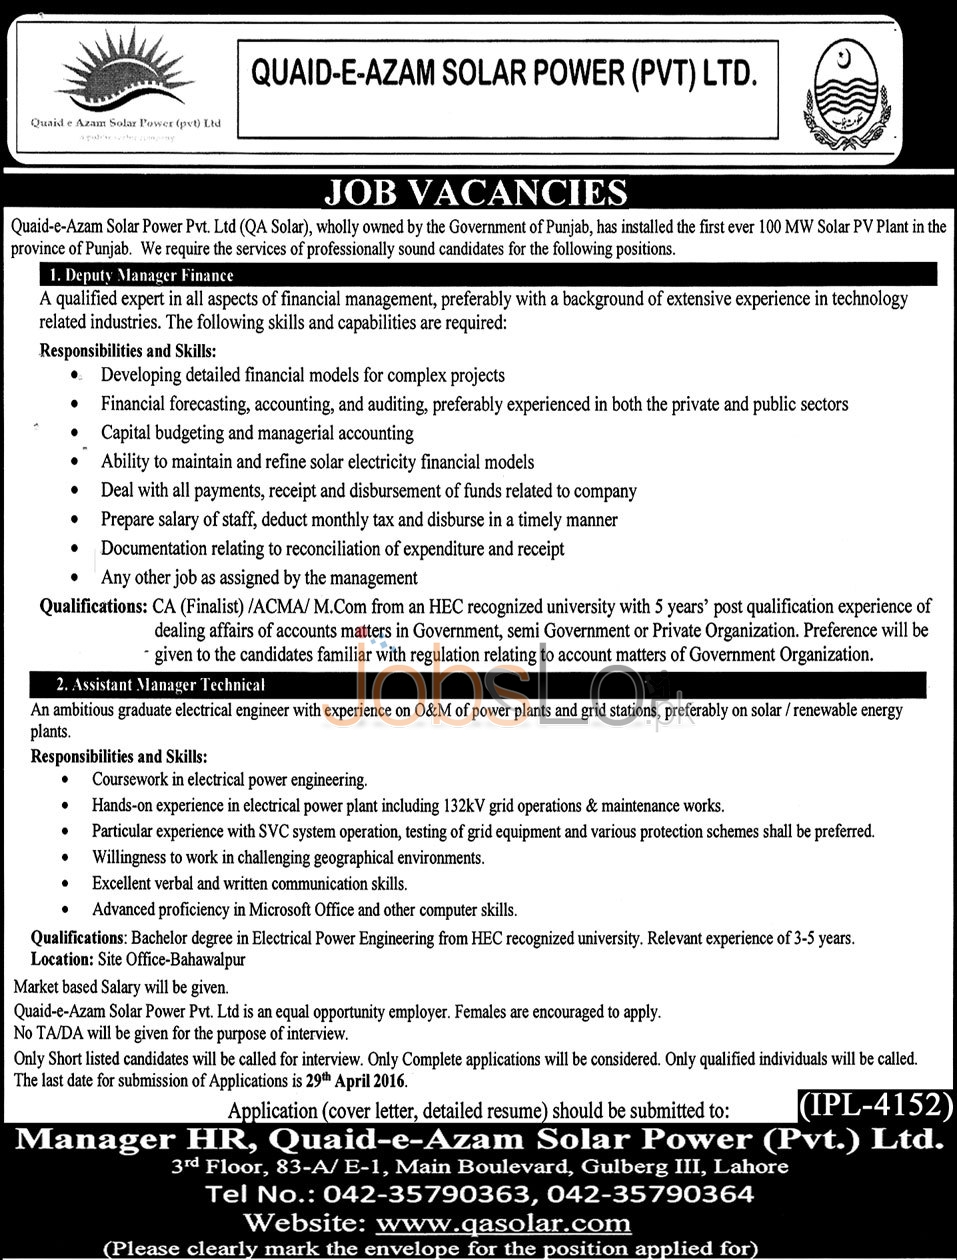 Quaid-e-Azam Solar Power Pvt Ltd Jobs